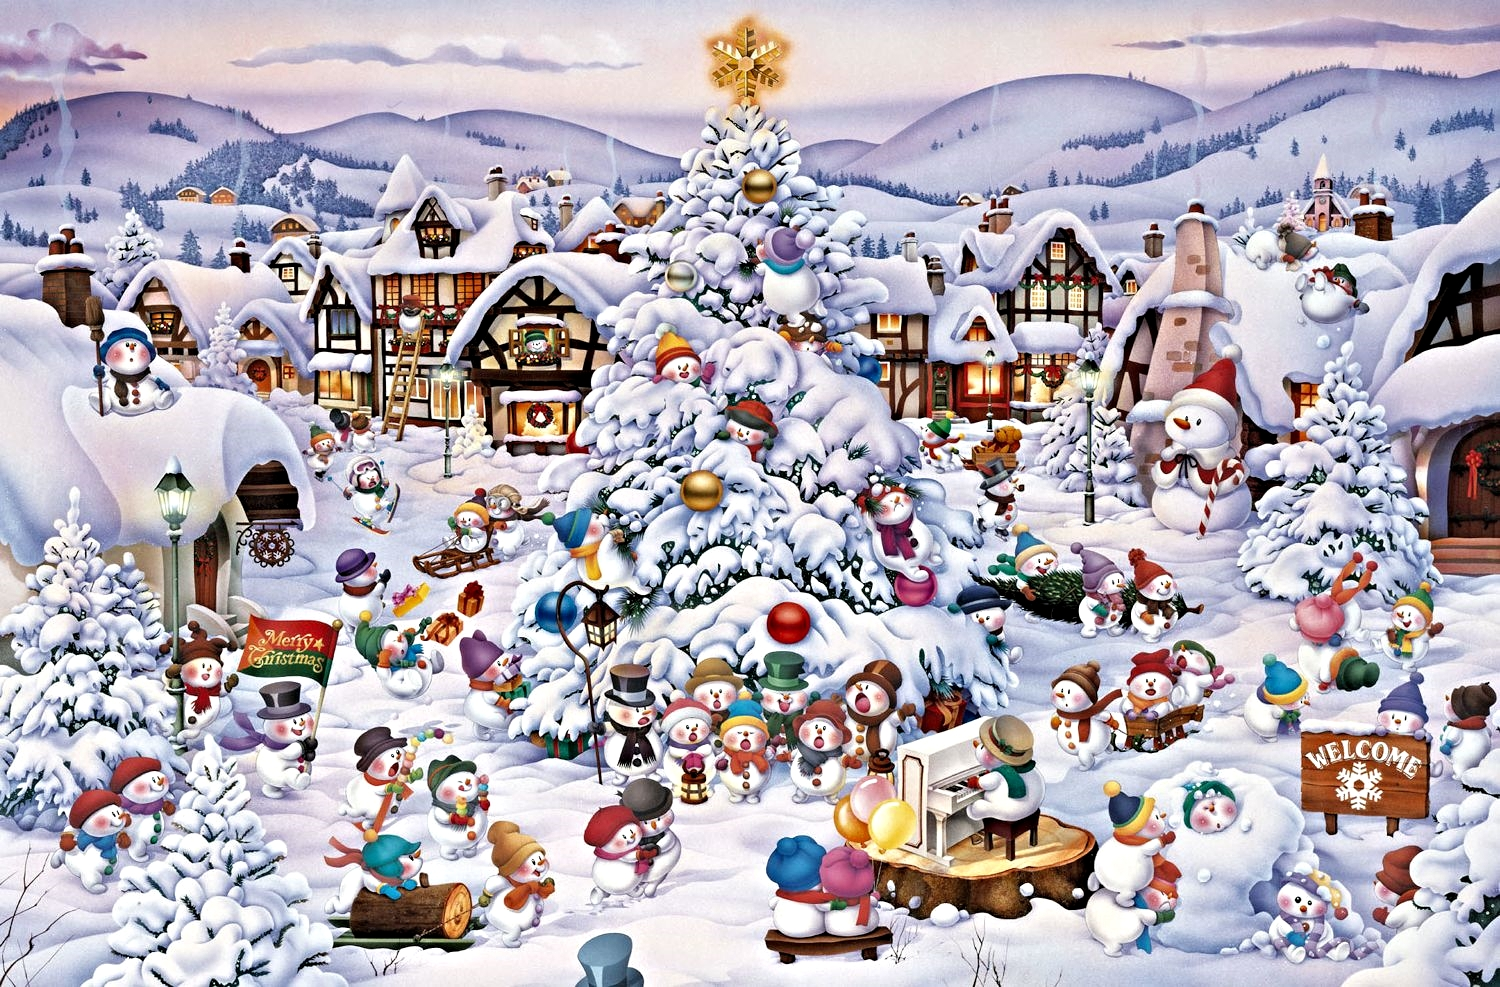 1000 piece seasonal jigsaw puzzle Christmas Choir by artist Yoshina Kanda manufacturered by Piatnik